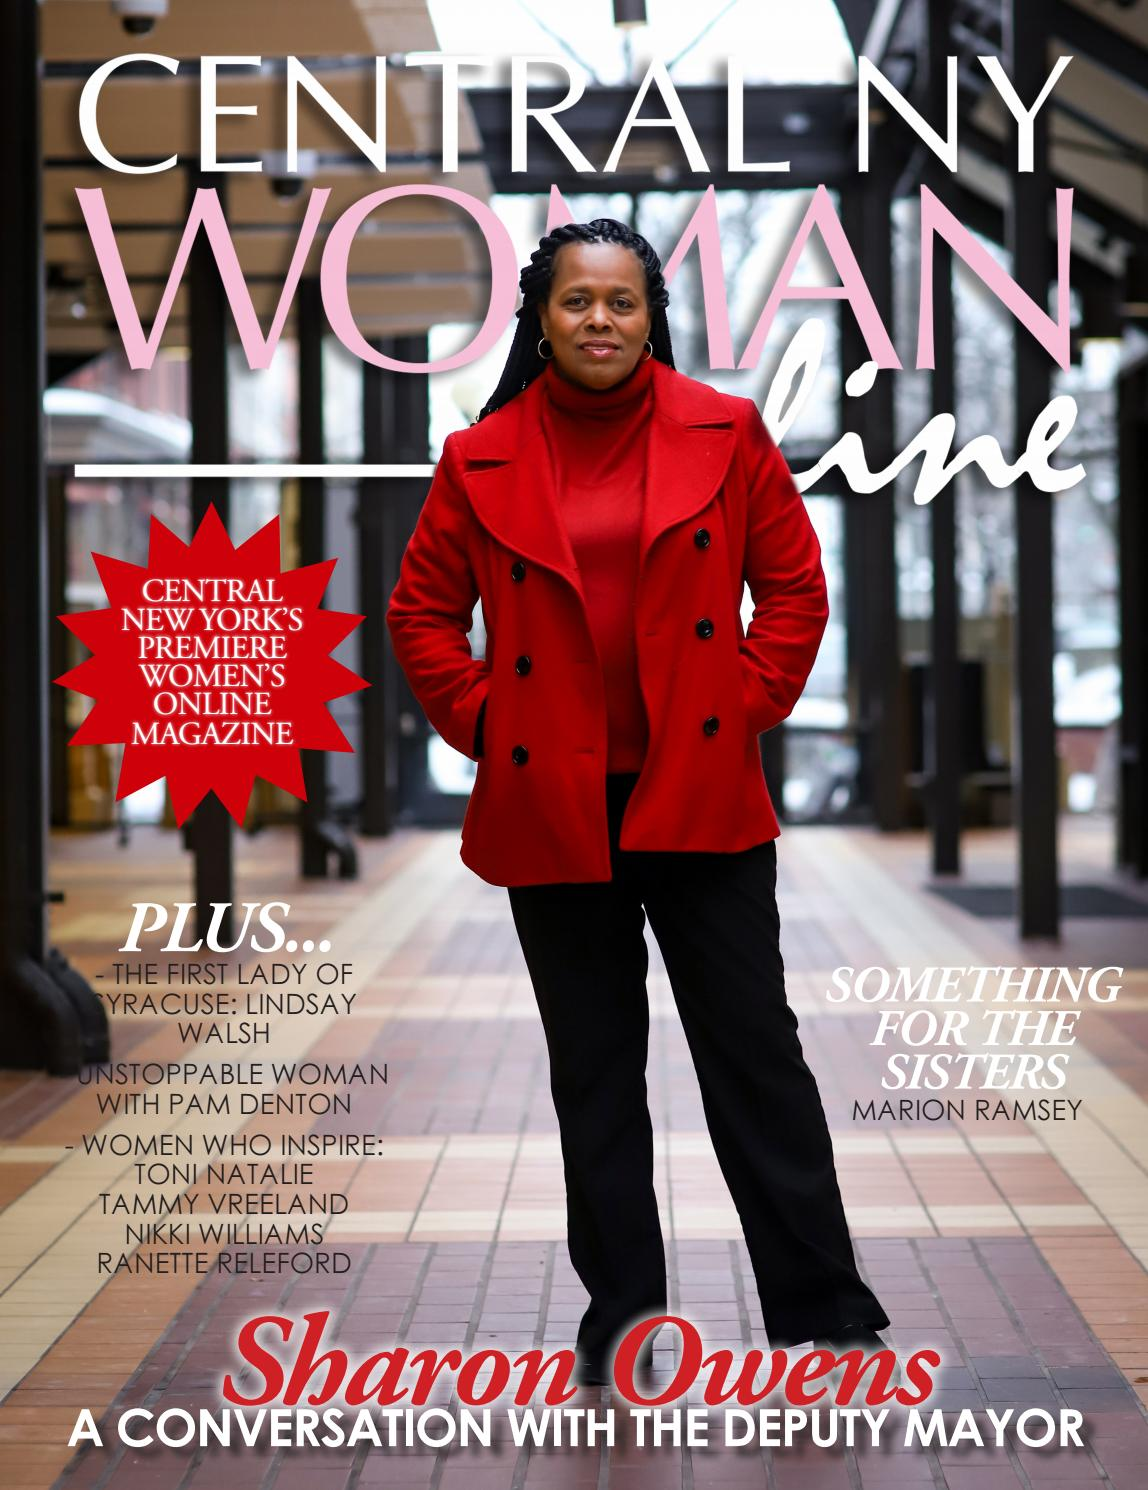 Cny Woman Online Feb March 2020 By Rochester Woman Online Issuu